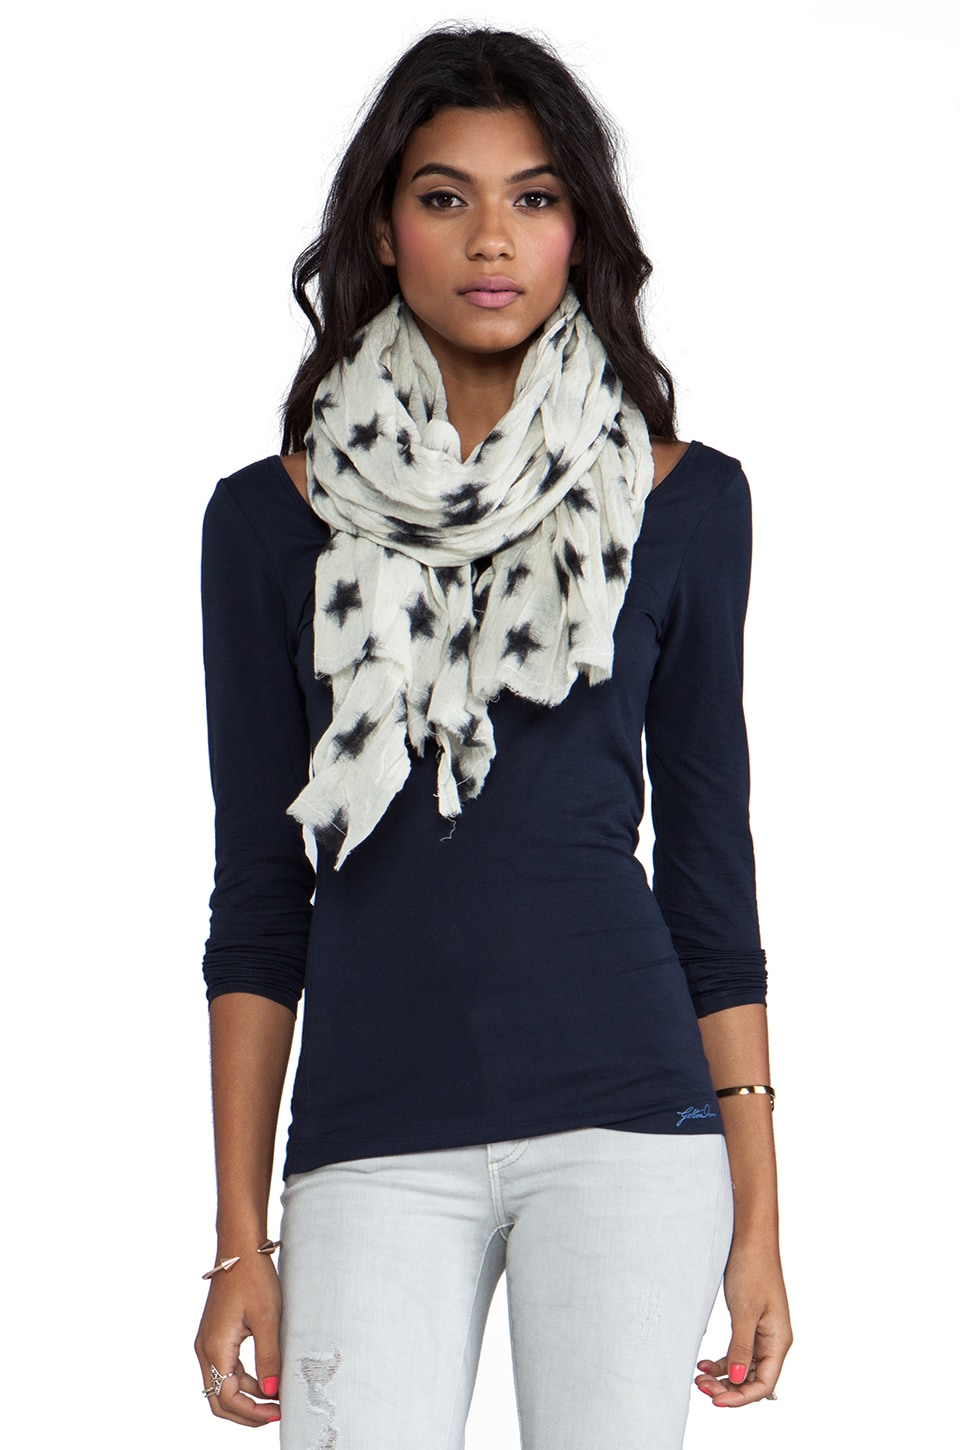 Maison Scotch Star Scarf in White/ Black